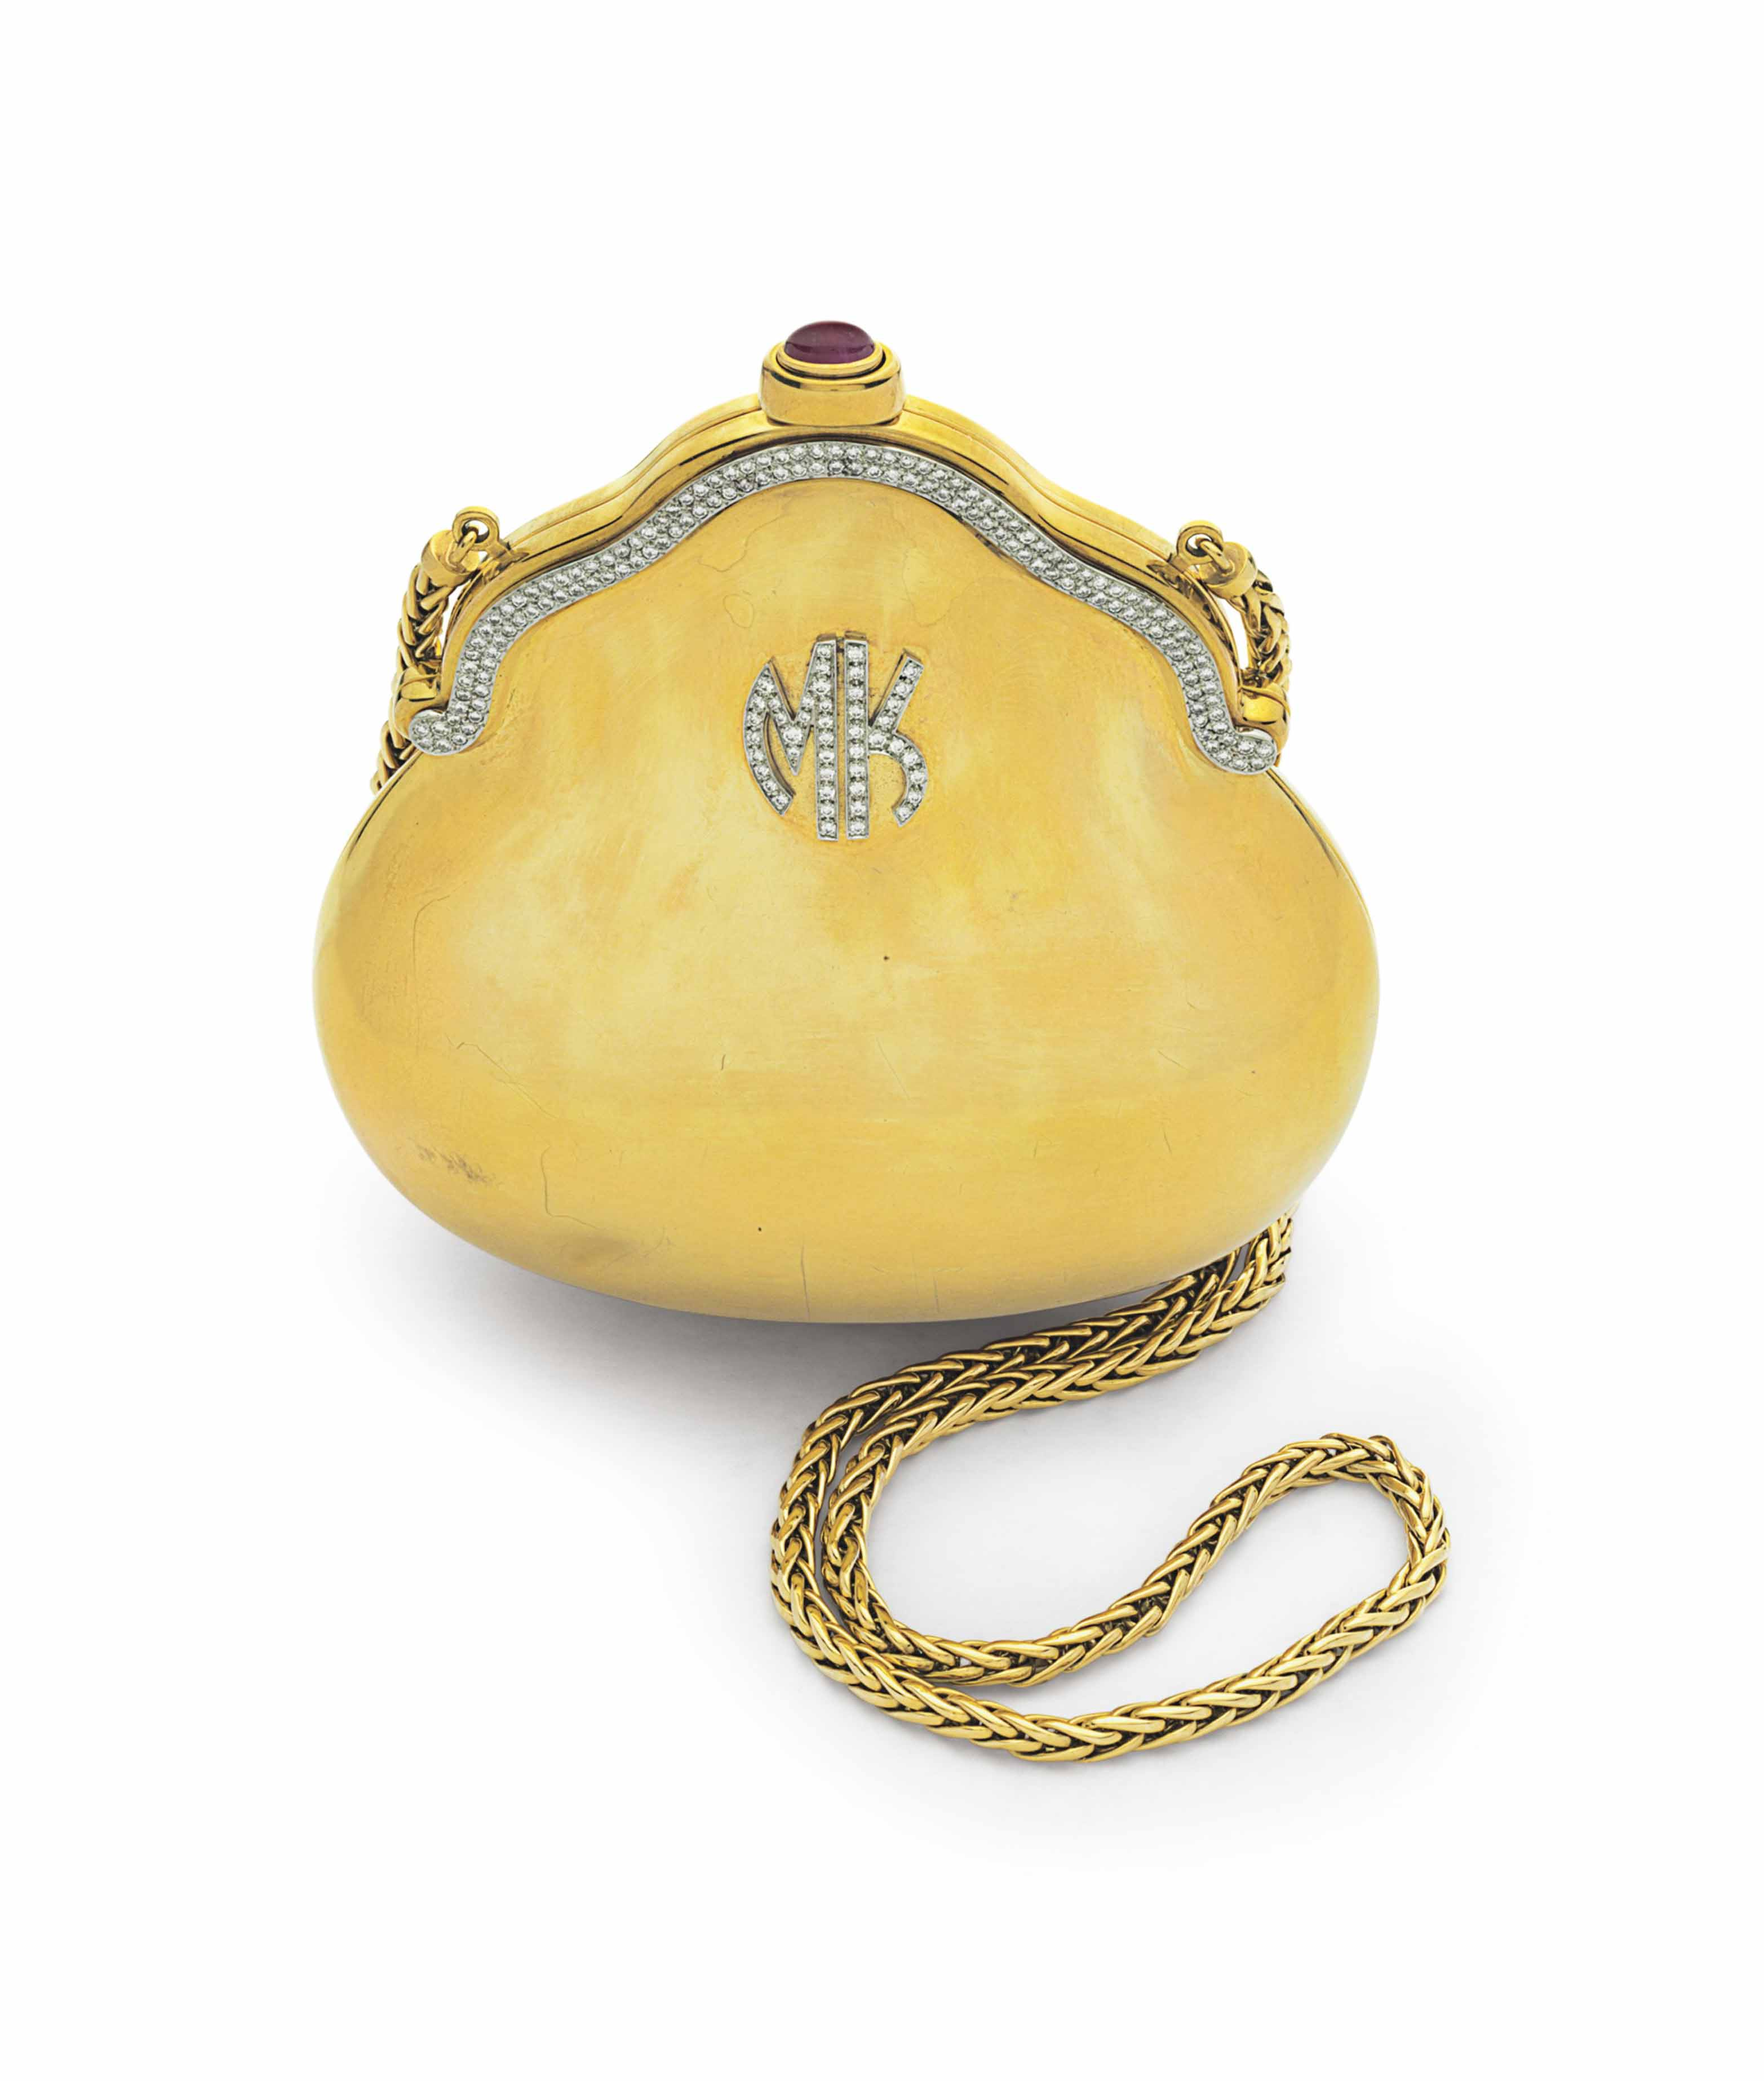 A GOLD, DIAMOND AND RUBY EVENING BAG, BY JUDITH LEIBER